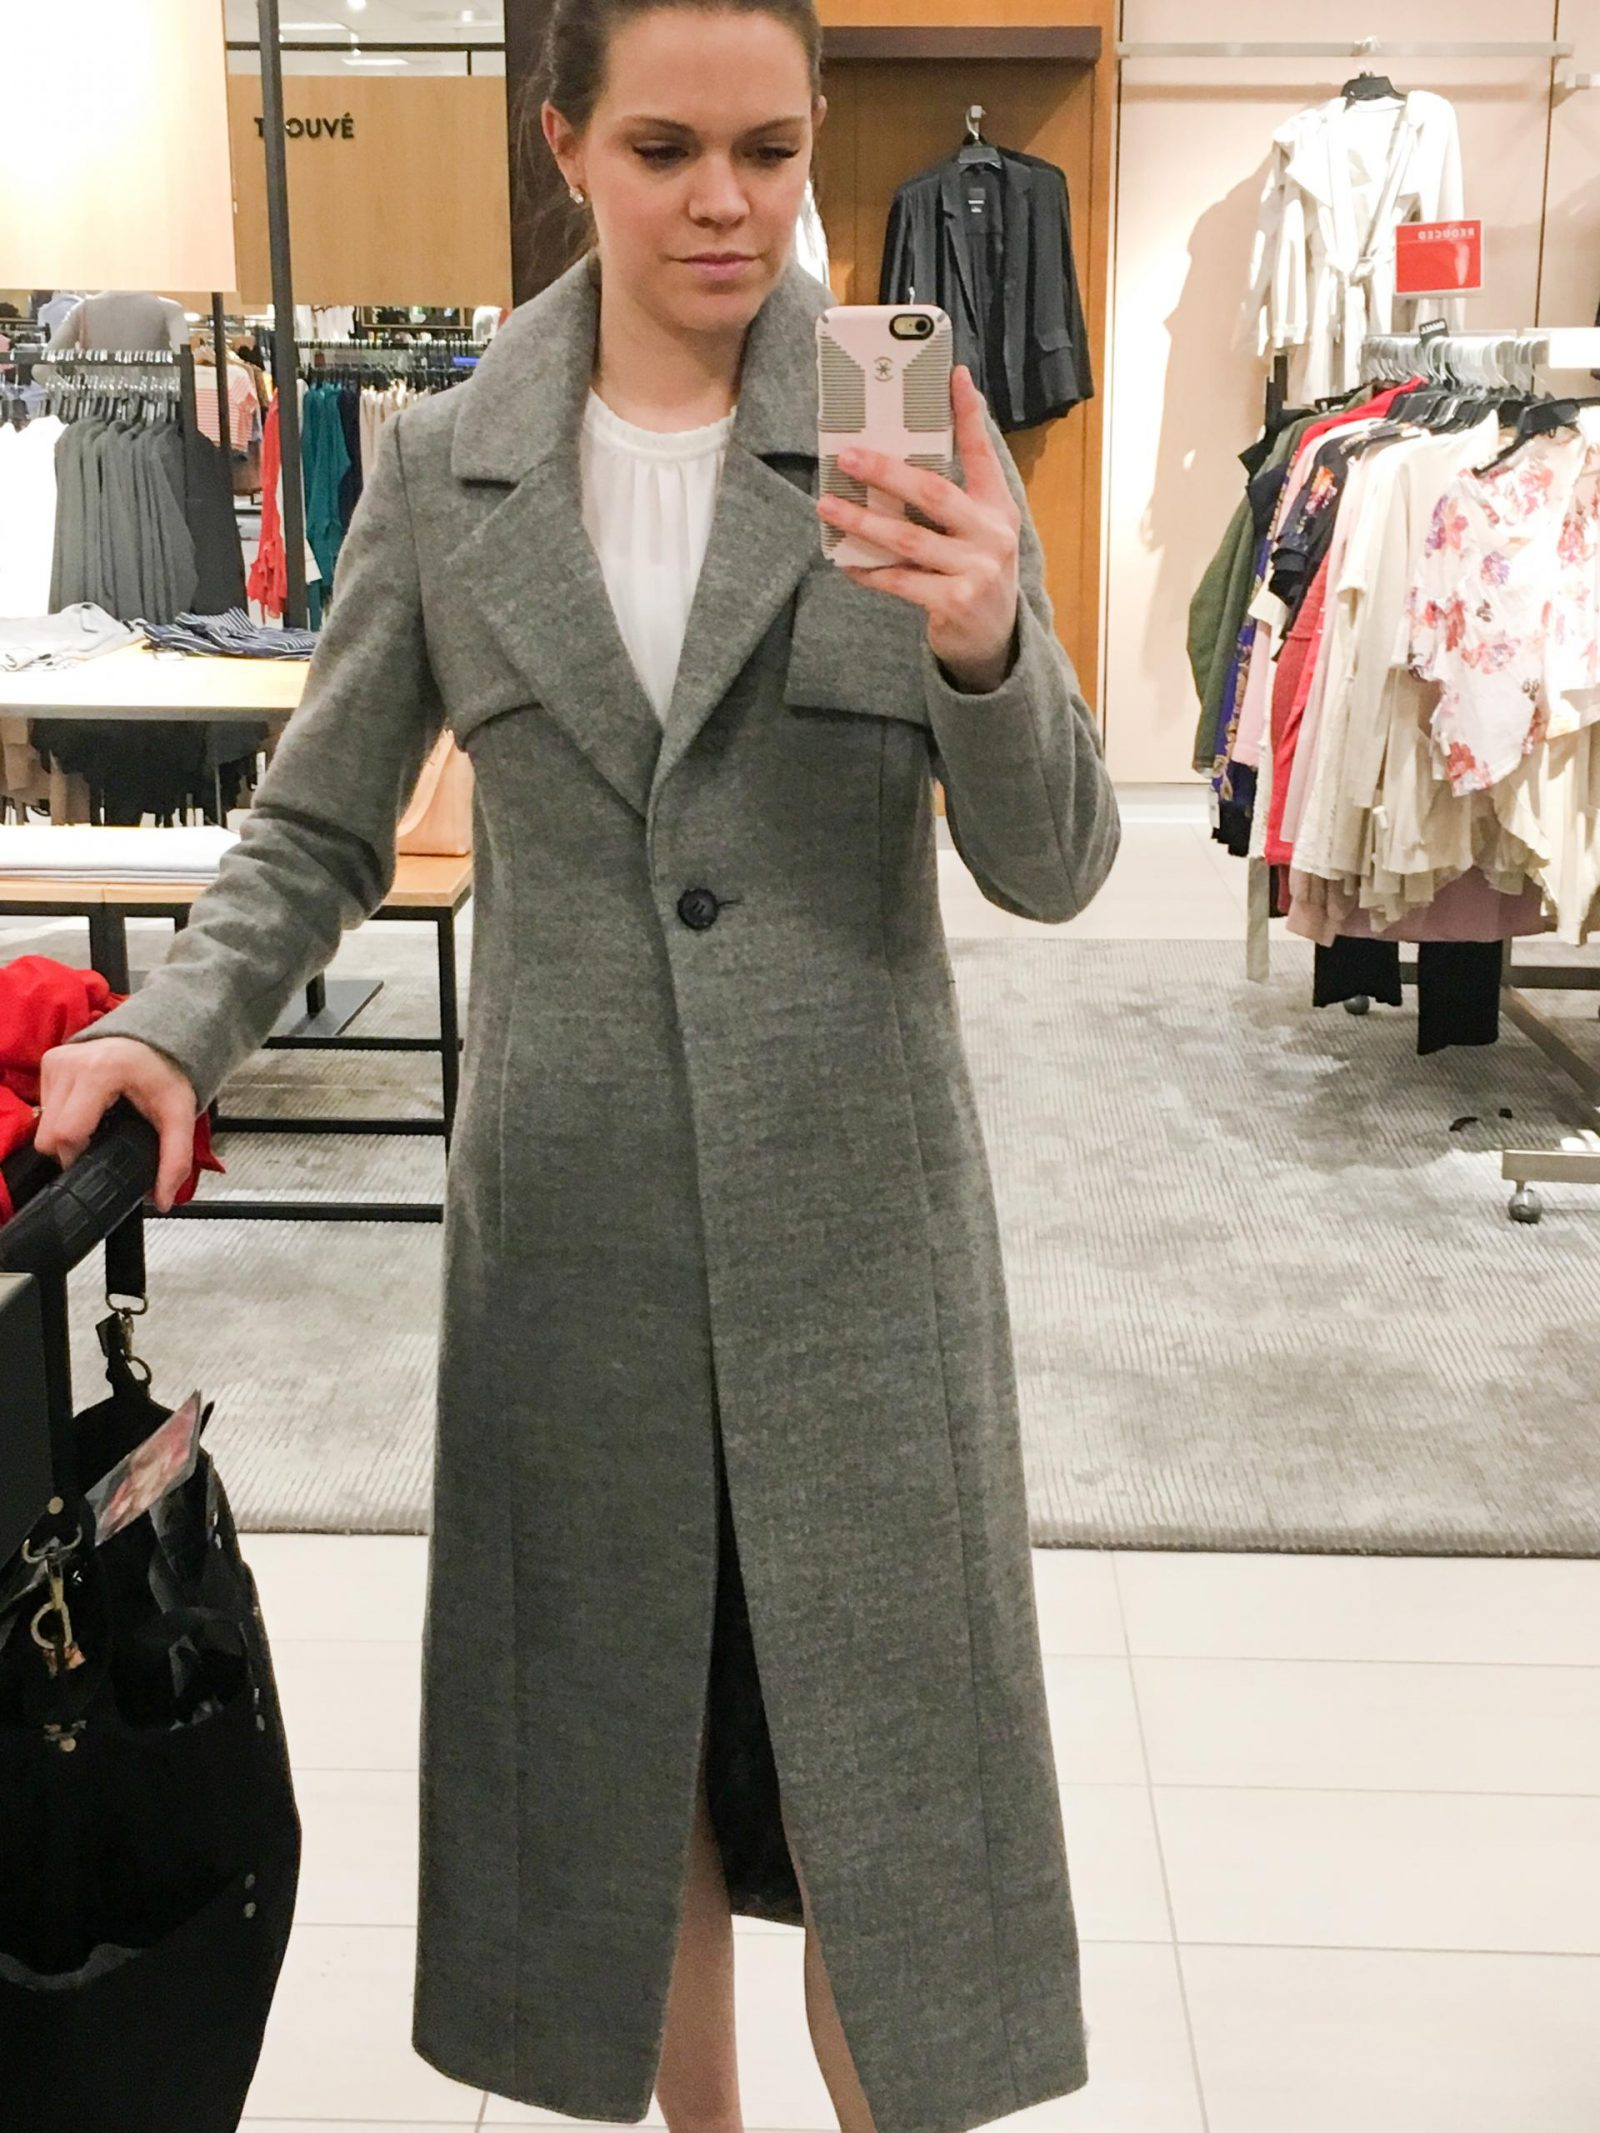 Beautiful Winter Coat on Sale at Nordstrom at Woodfield Mall in Schaumburg, Illinois. The Best Woodfield Mall Stores in Schaumburg Illinois. Woodfield Mall is one of the biggest malls in America, let me help you decide where to stop first!